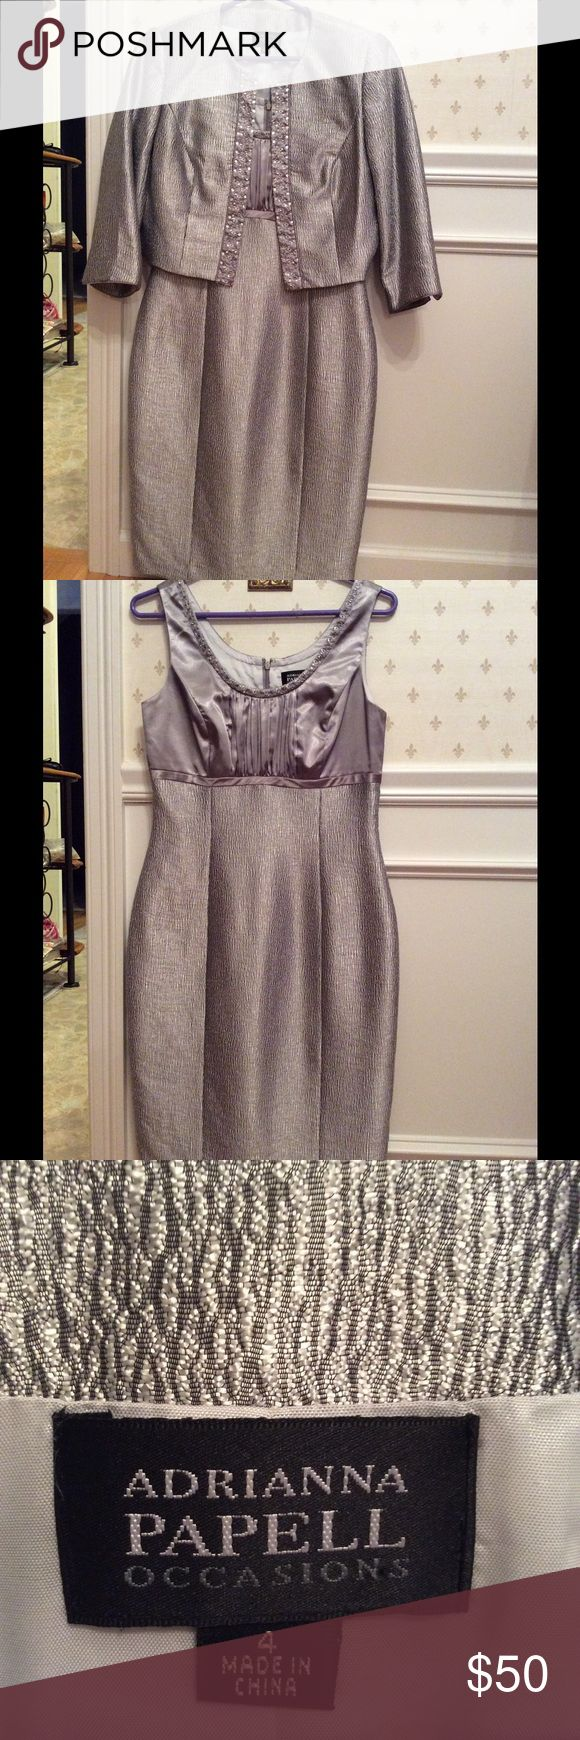 """Adrianna Papell Silver Occasion dress Authentic upscale Adrianna Papell silver embellished dress from her """" Occasion"""" line. Dress has grey satin bodice with silver yoke sparkles. Bottom is silver crinkle.  Fully lined.  Jacket is silver crinkle with silver embellishments at jacket closure.  Fully lined.  EXCELLANT condition.  Worn only for special occasion.  You will look beautiful in this dress Adrianna Papell Dresses"""